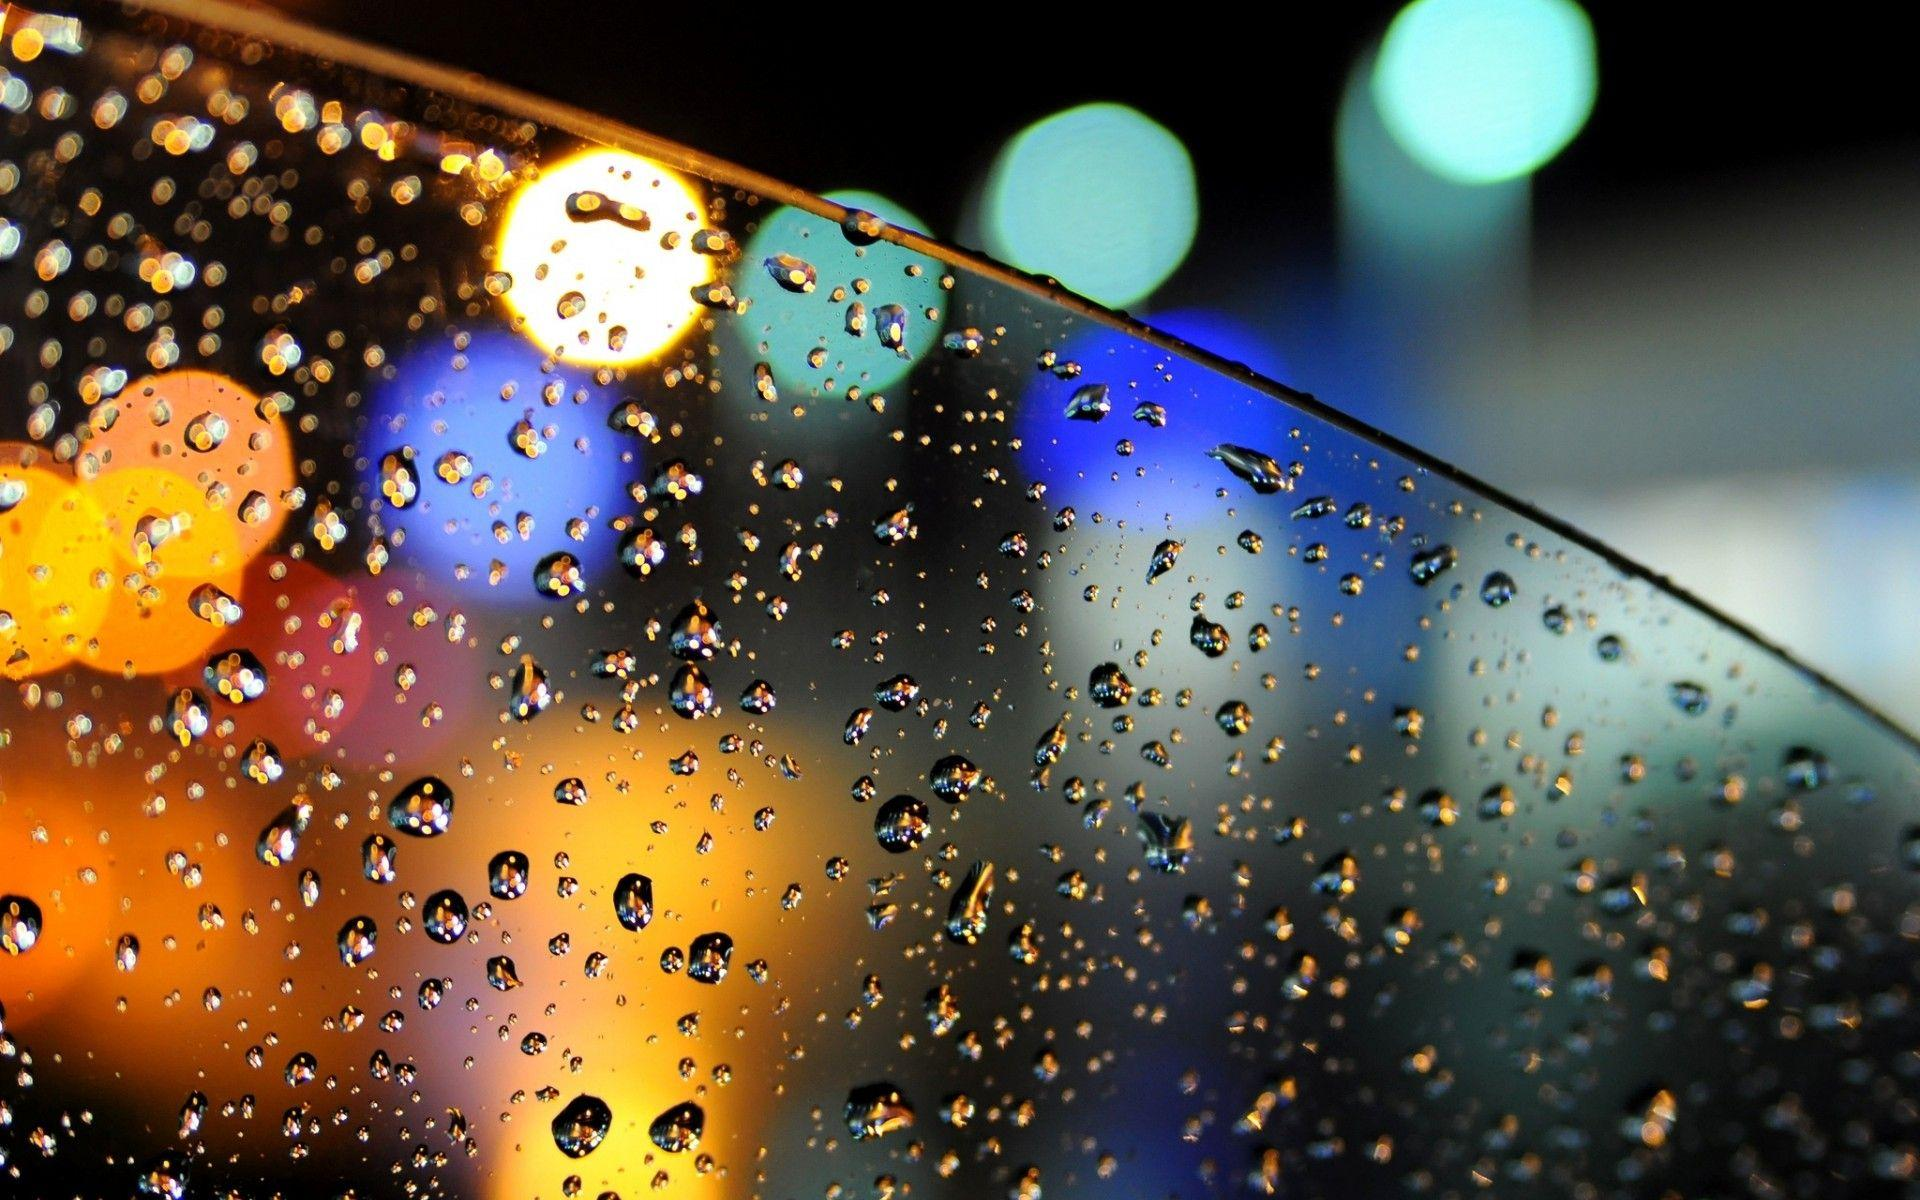 Glass With Drops Of Water Wallpapers Wallpaper Cave